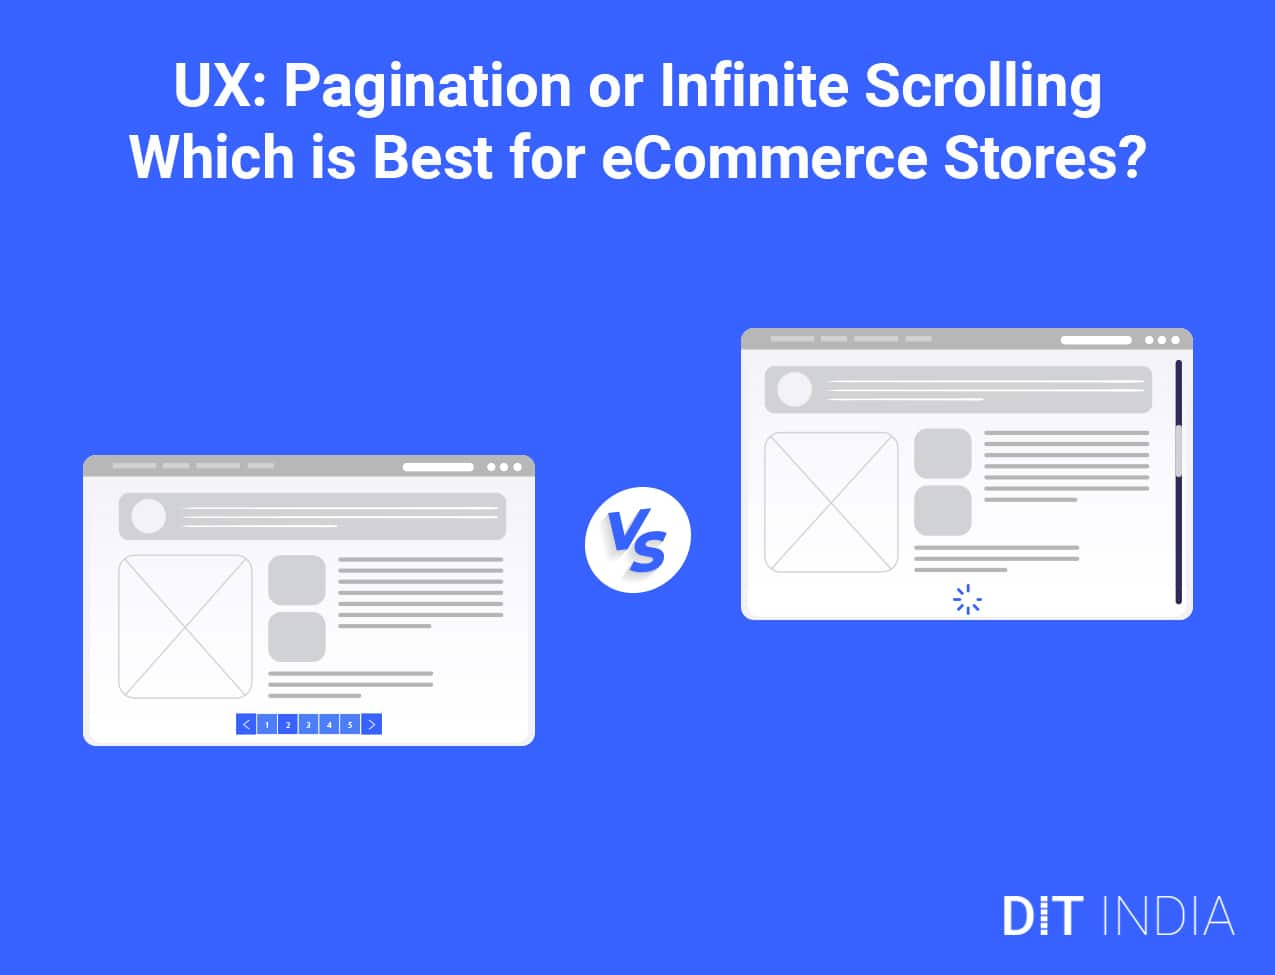 UX: Pagination or Infinite Scrolling – Which is Best for eCommerce Stores?